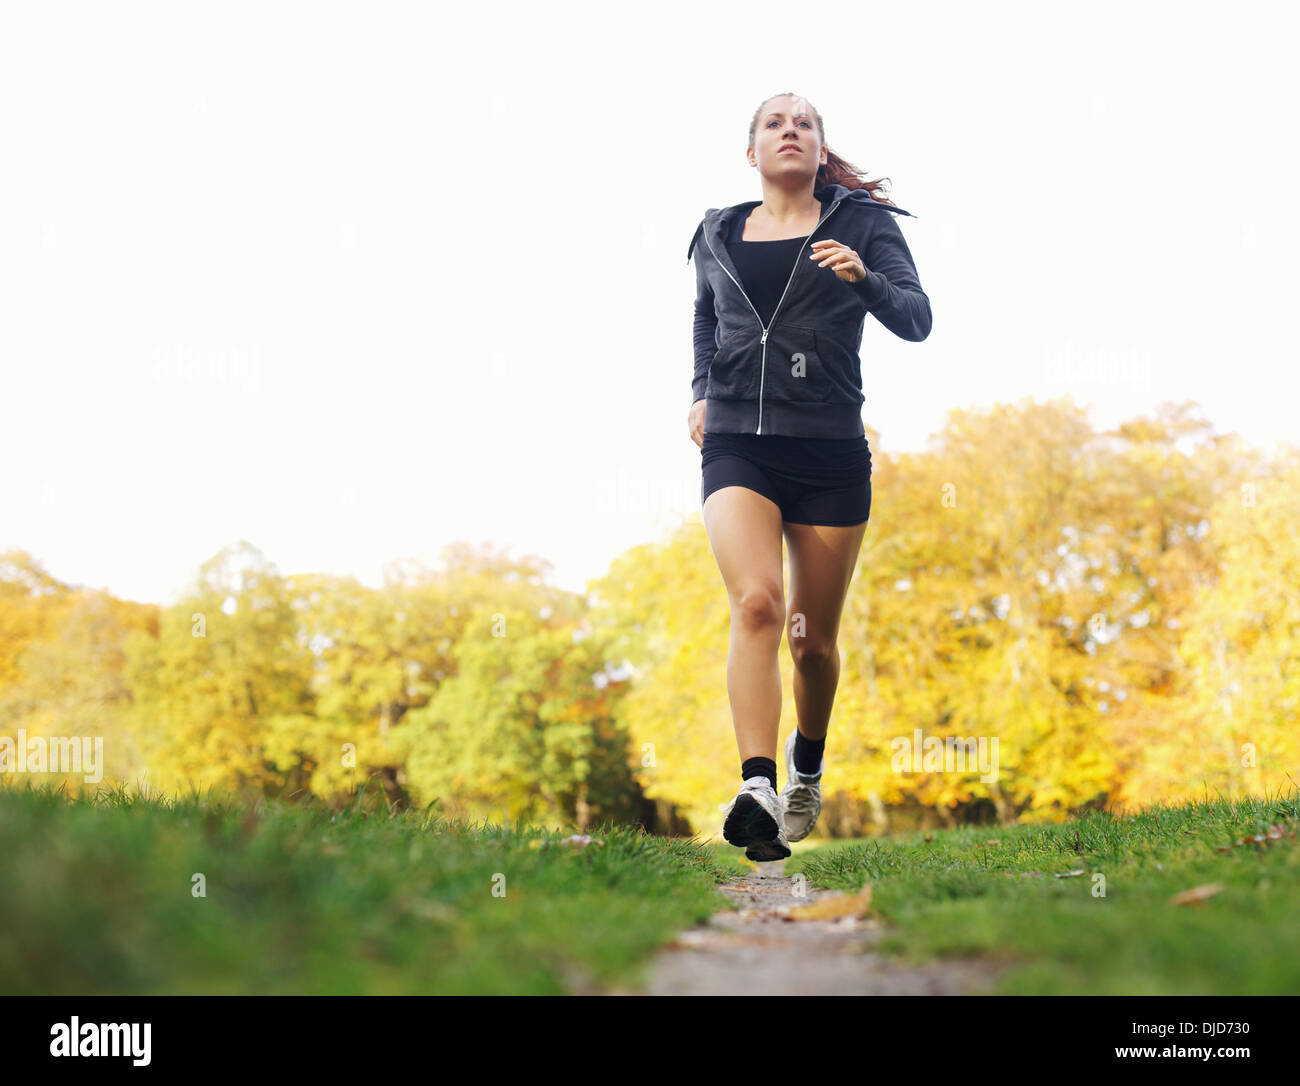 Full length image of healthy young woman jogging in park. Caucasian female athlete runner running. Fitness training in nature. - Stock Image